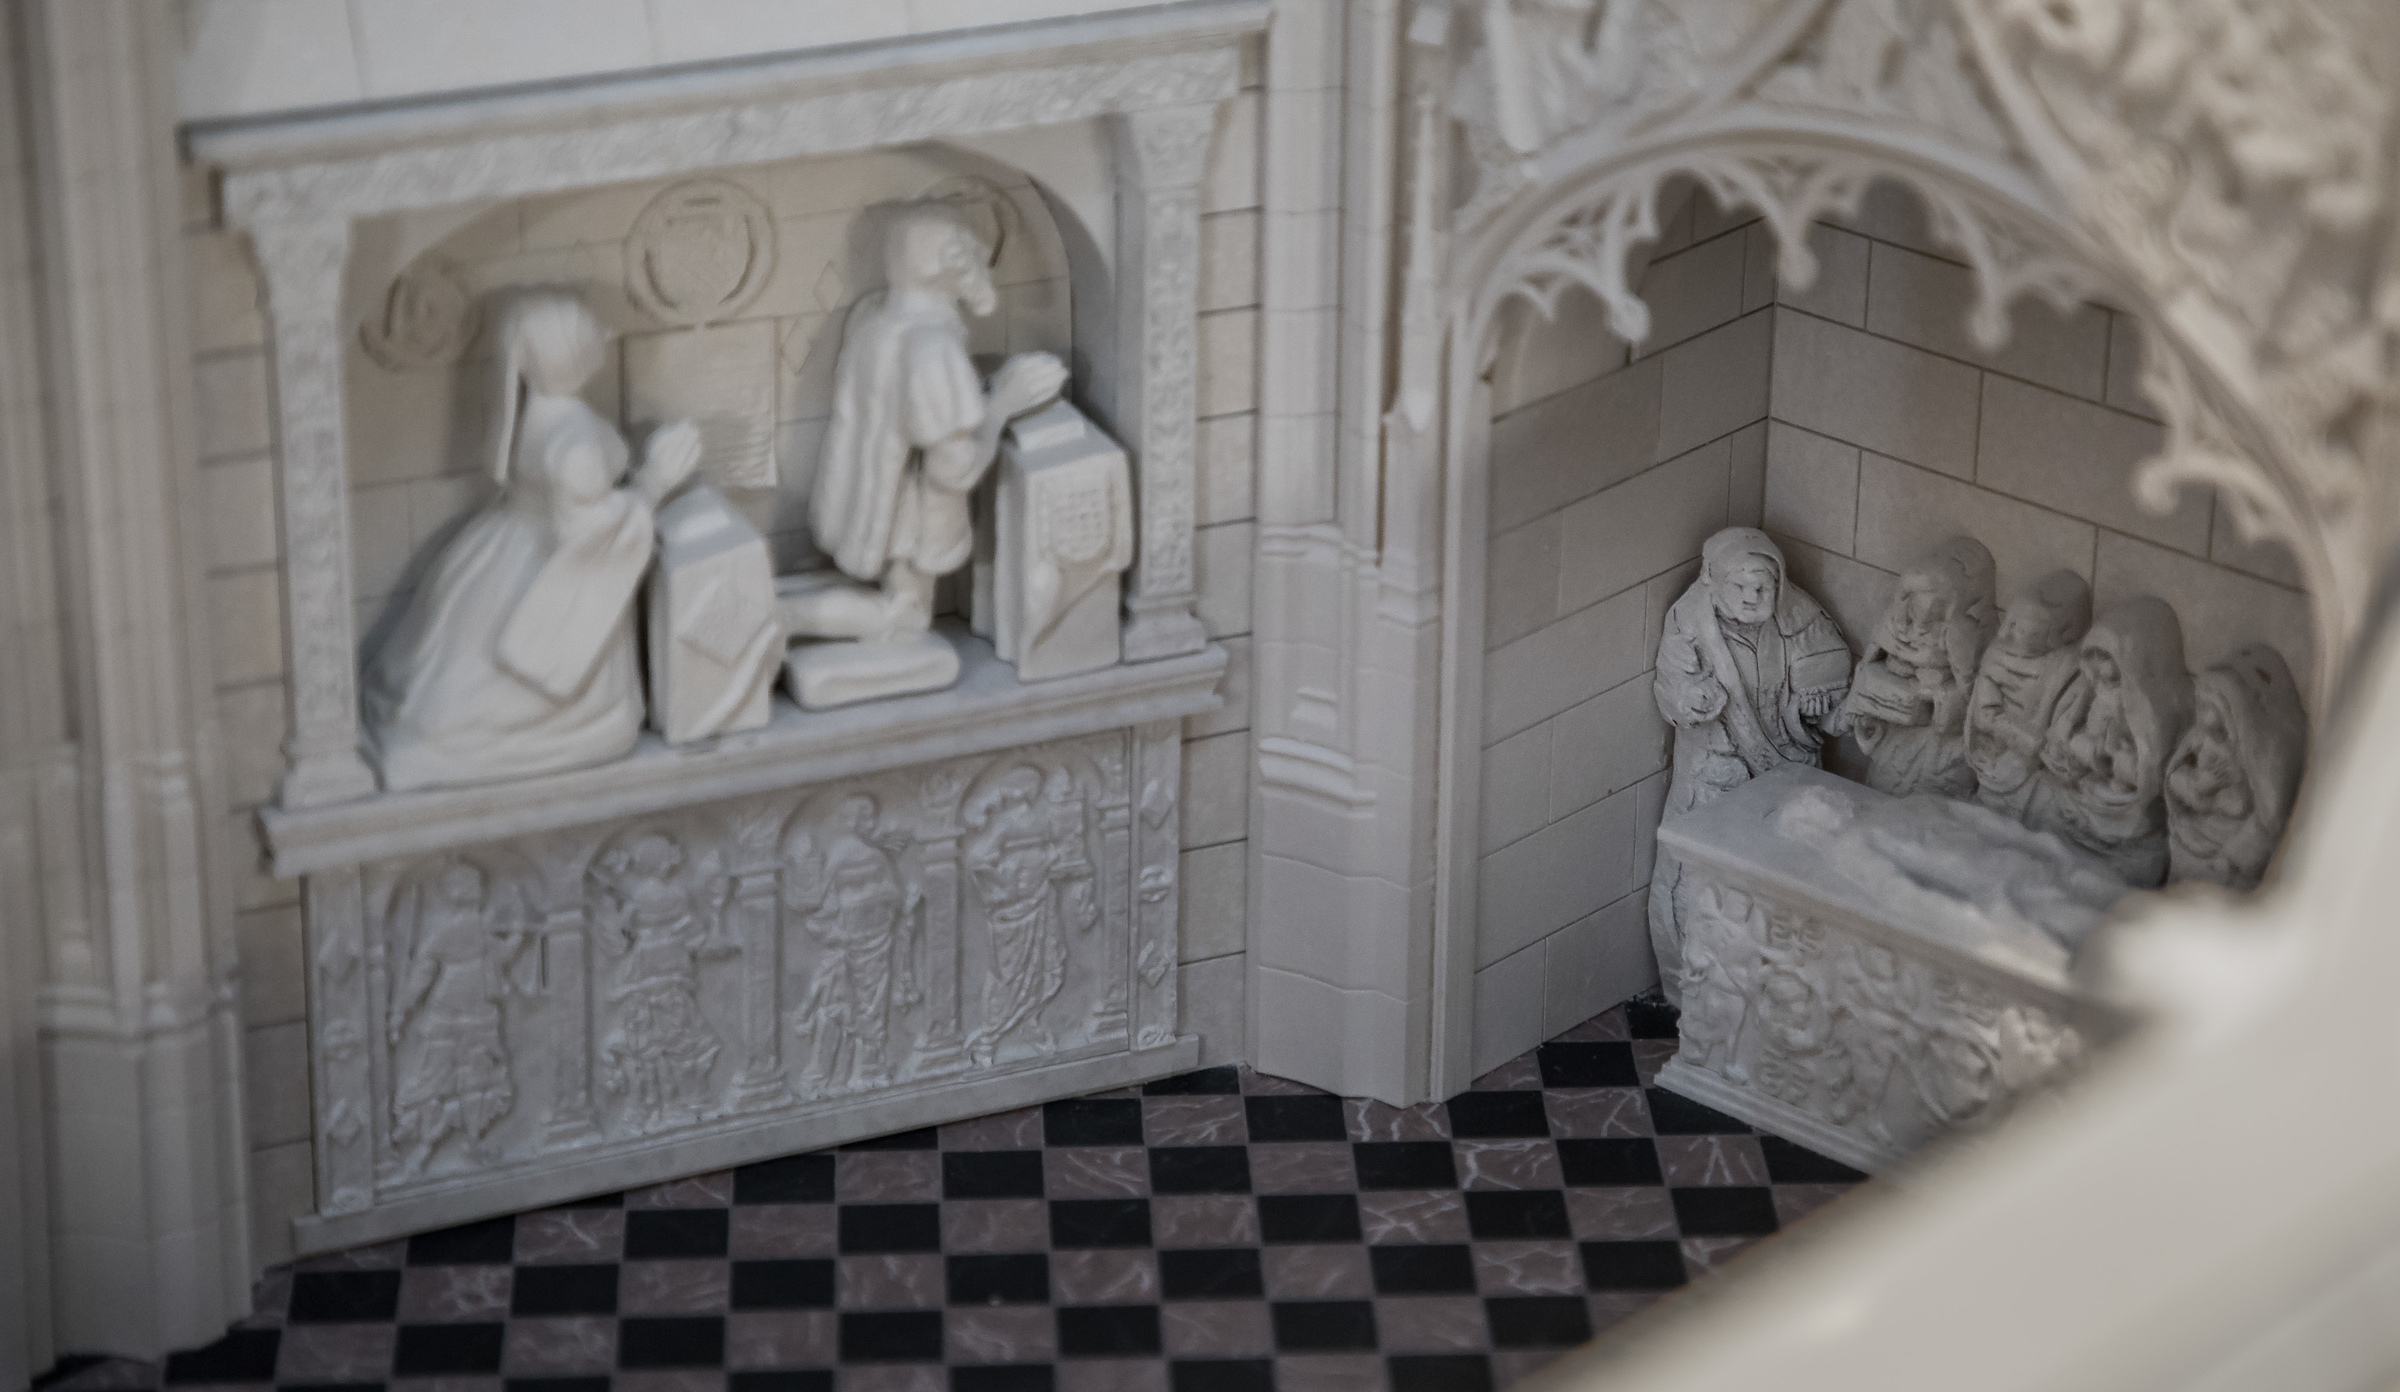 Detail of interior of Folleville church scale model